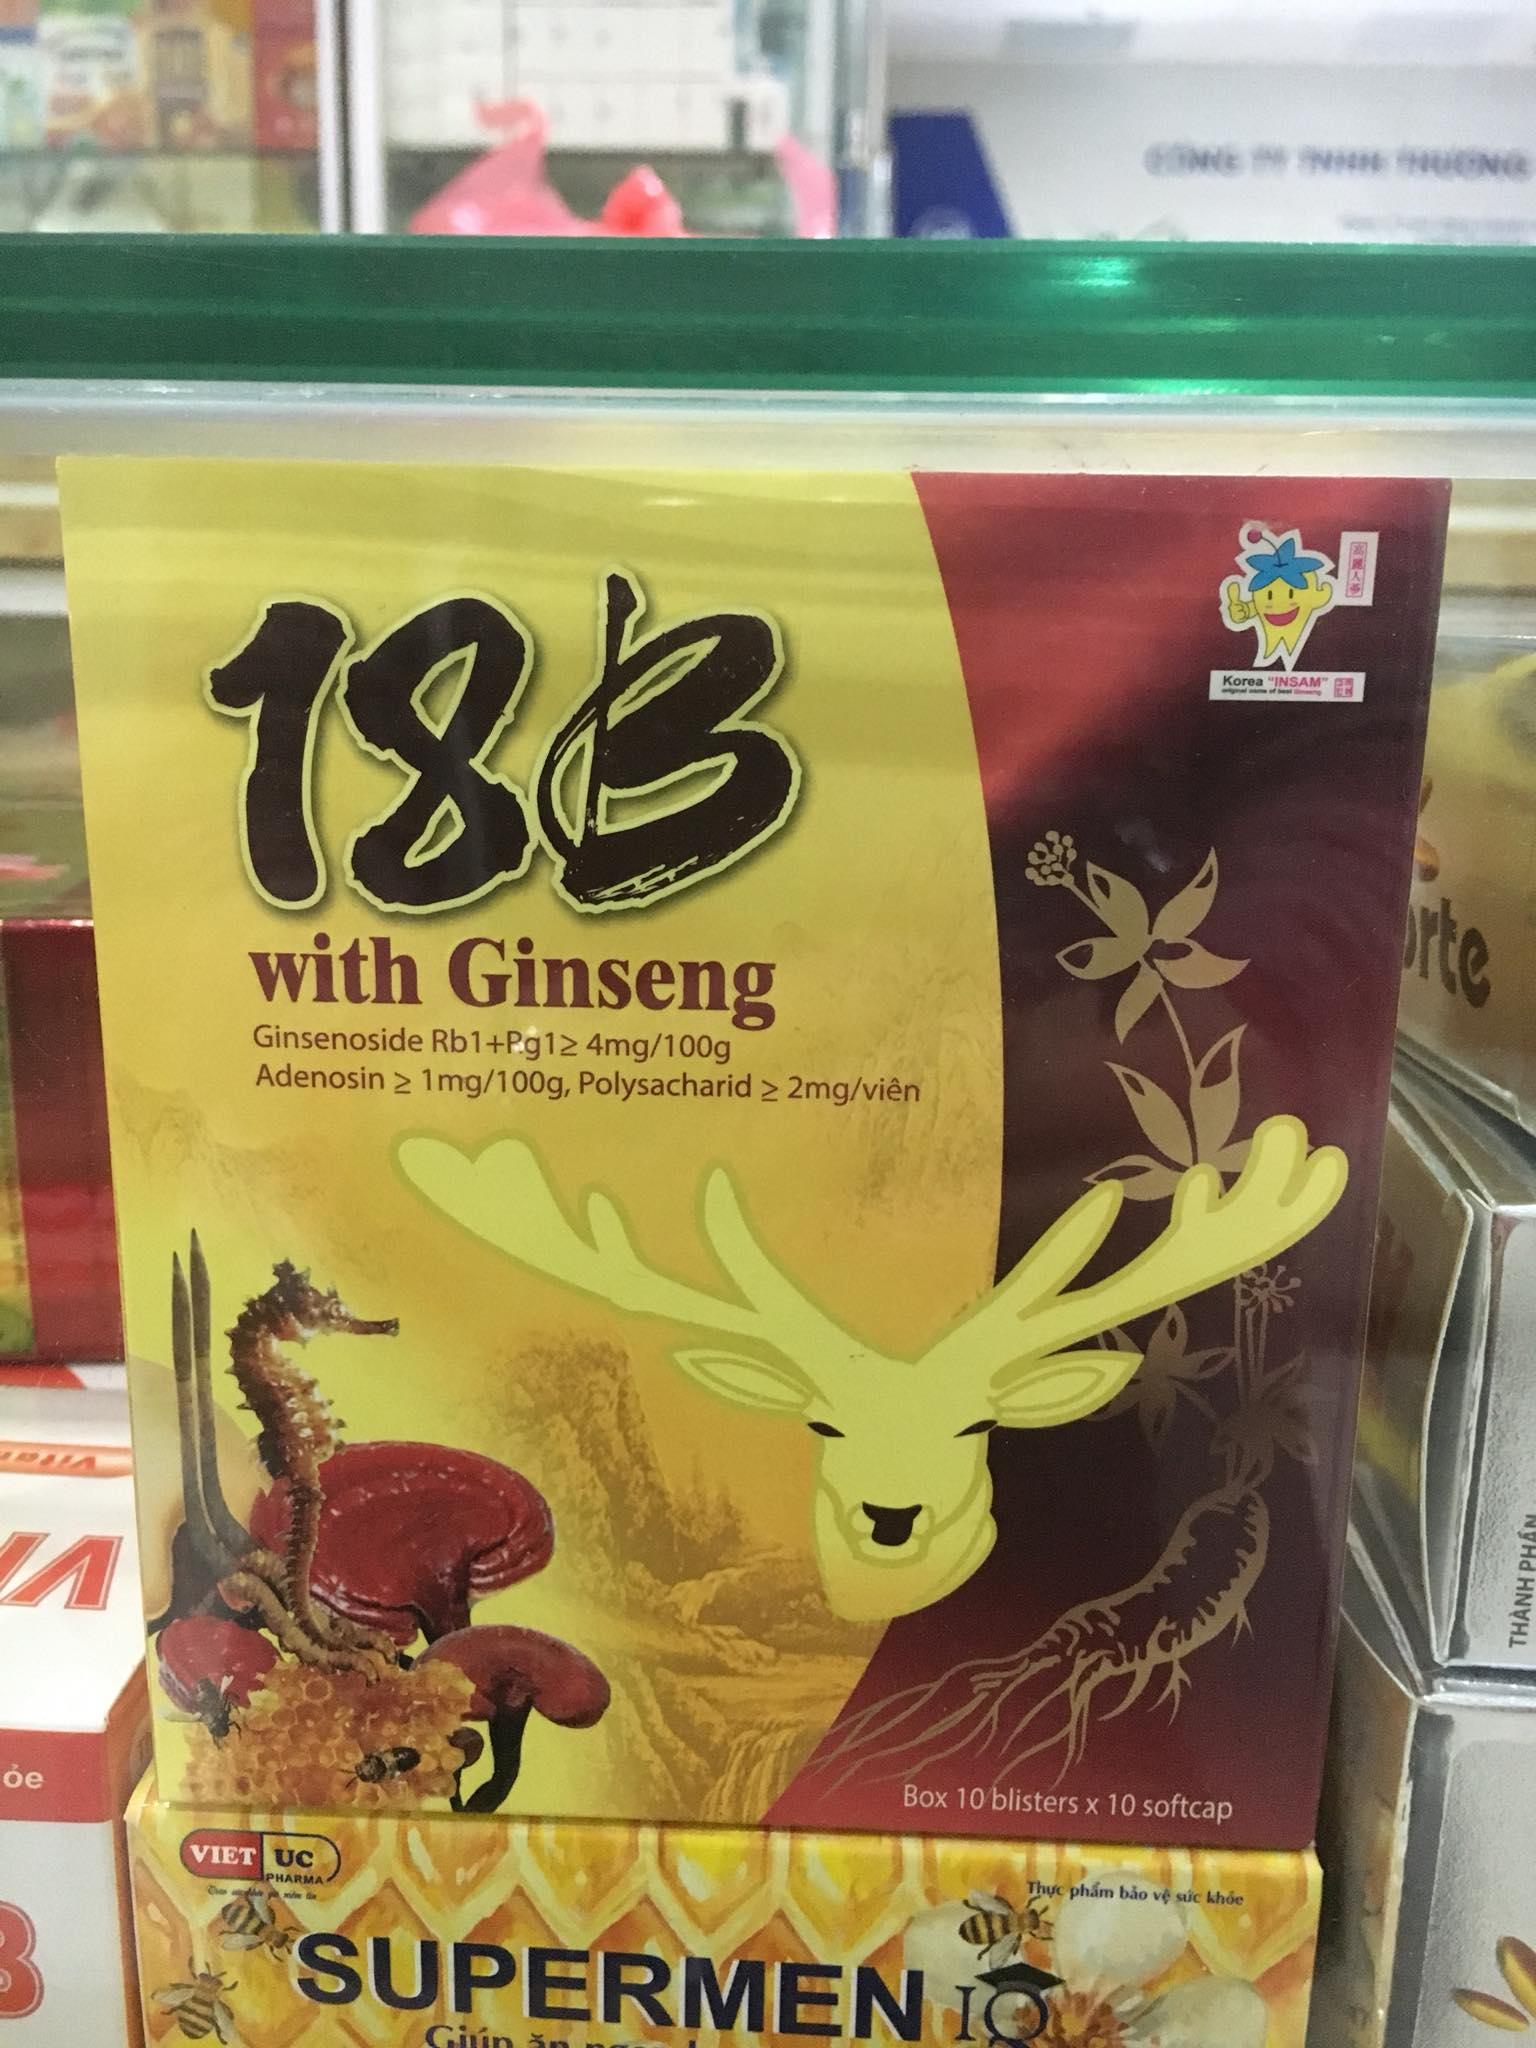 18b-with-ginseng